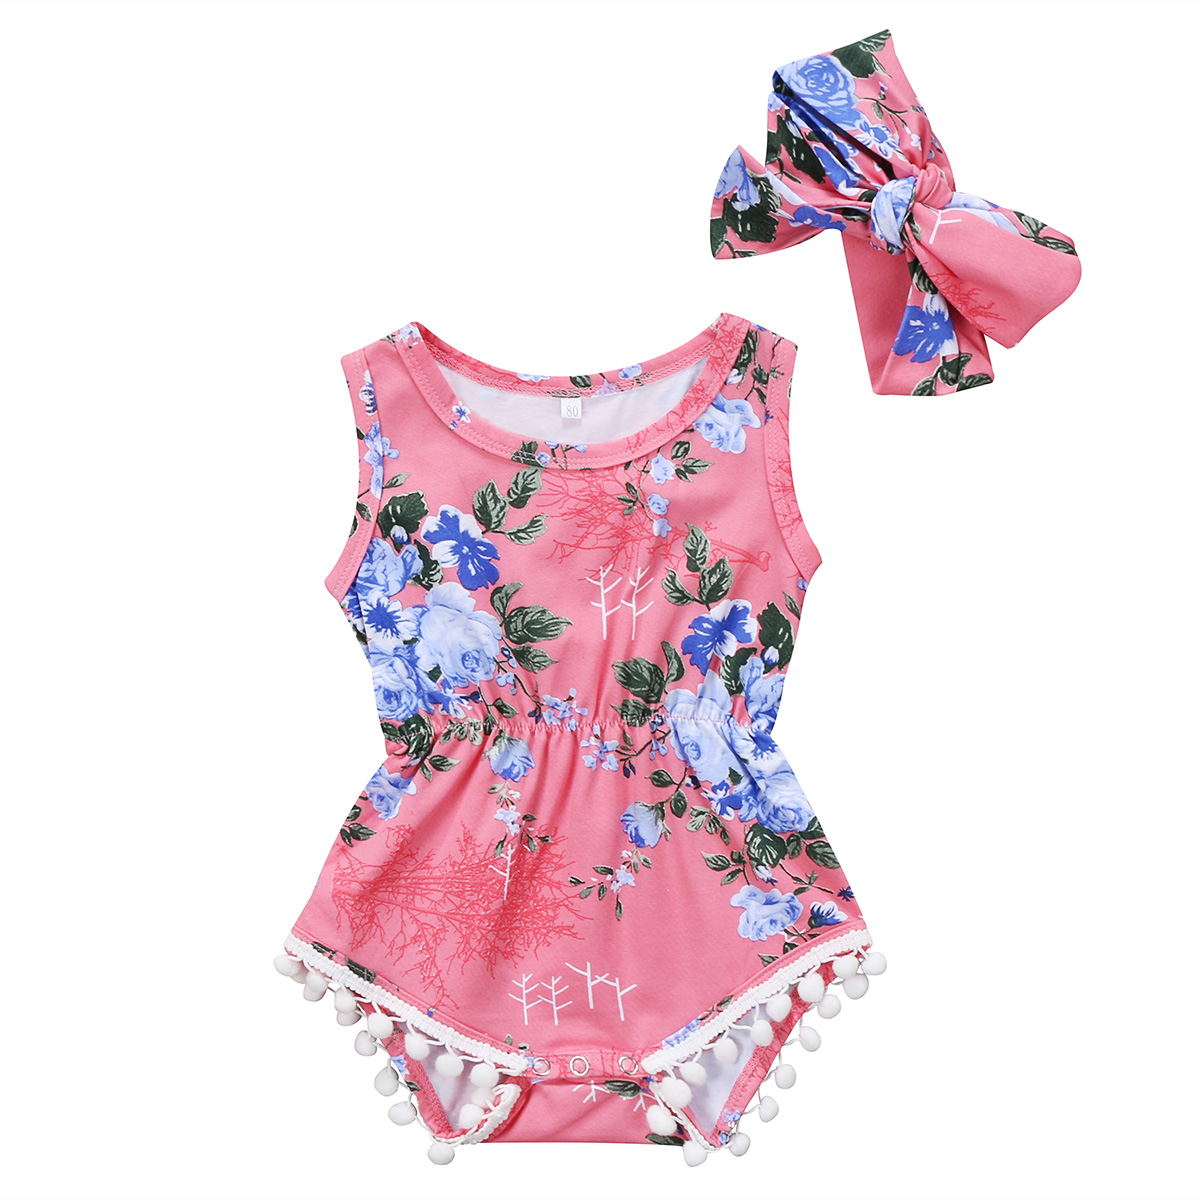 Infant Baby Girls Floral Tassels Romper Jumpsuit Outfits Summer Clothes 0-2T